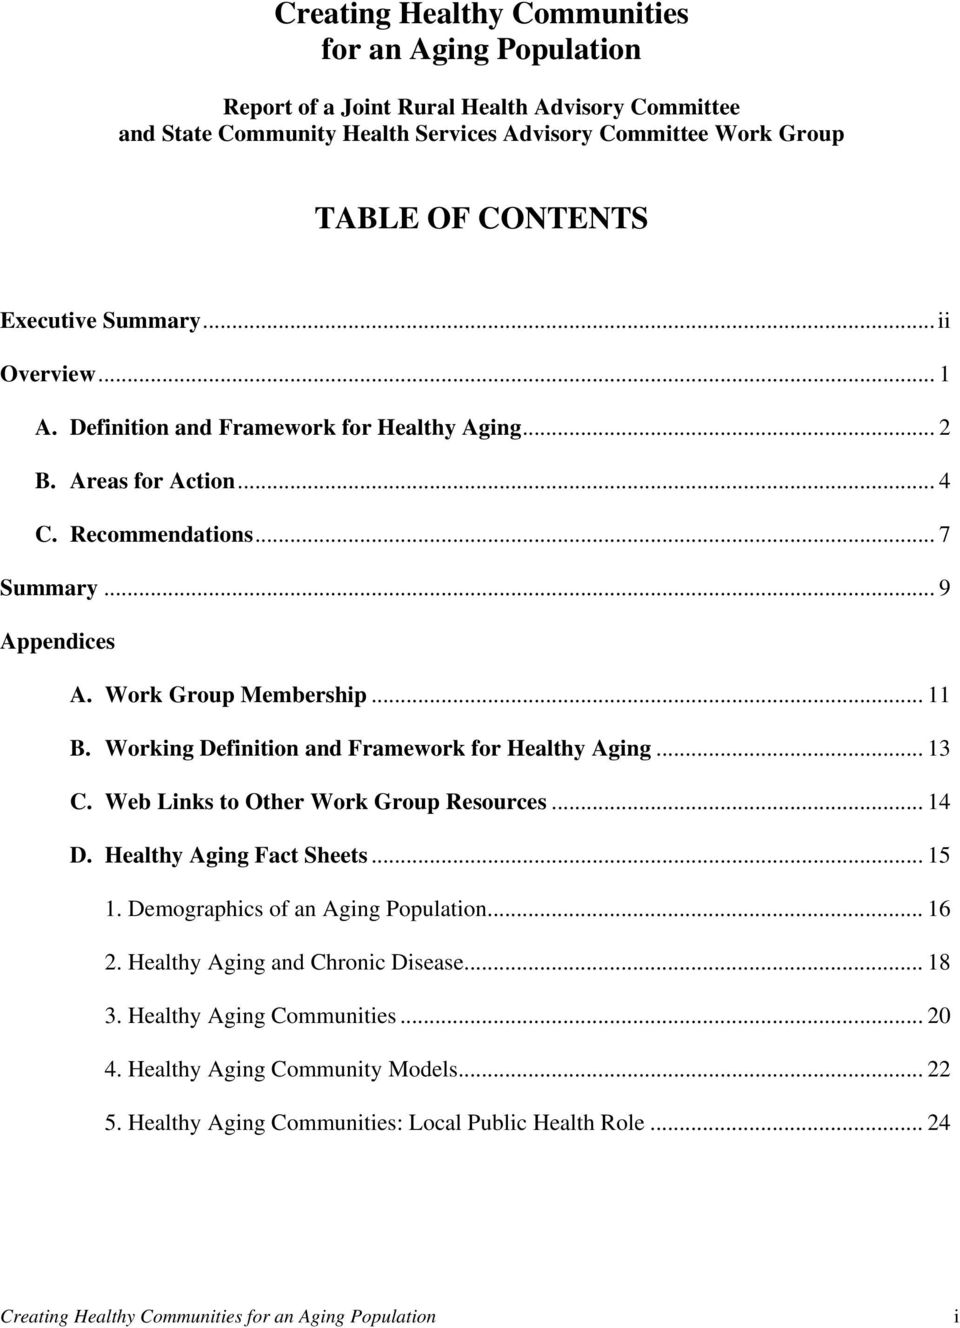 Working Definition and Framework for Healthy Aging... 13 C. Web Links to Other Work Group Resources... 14 D. Healthy Aging Fact Sheets... 15 1. Demographics of an Aging Population... 16 2.